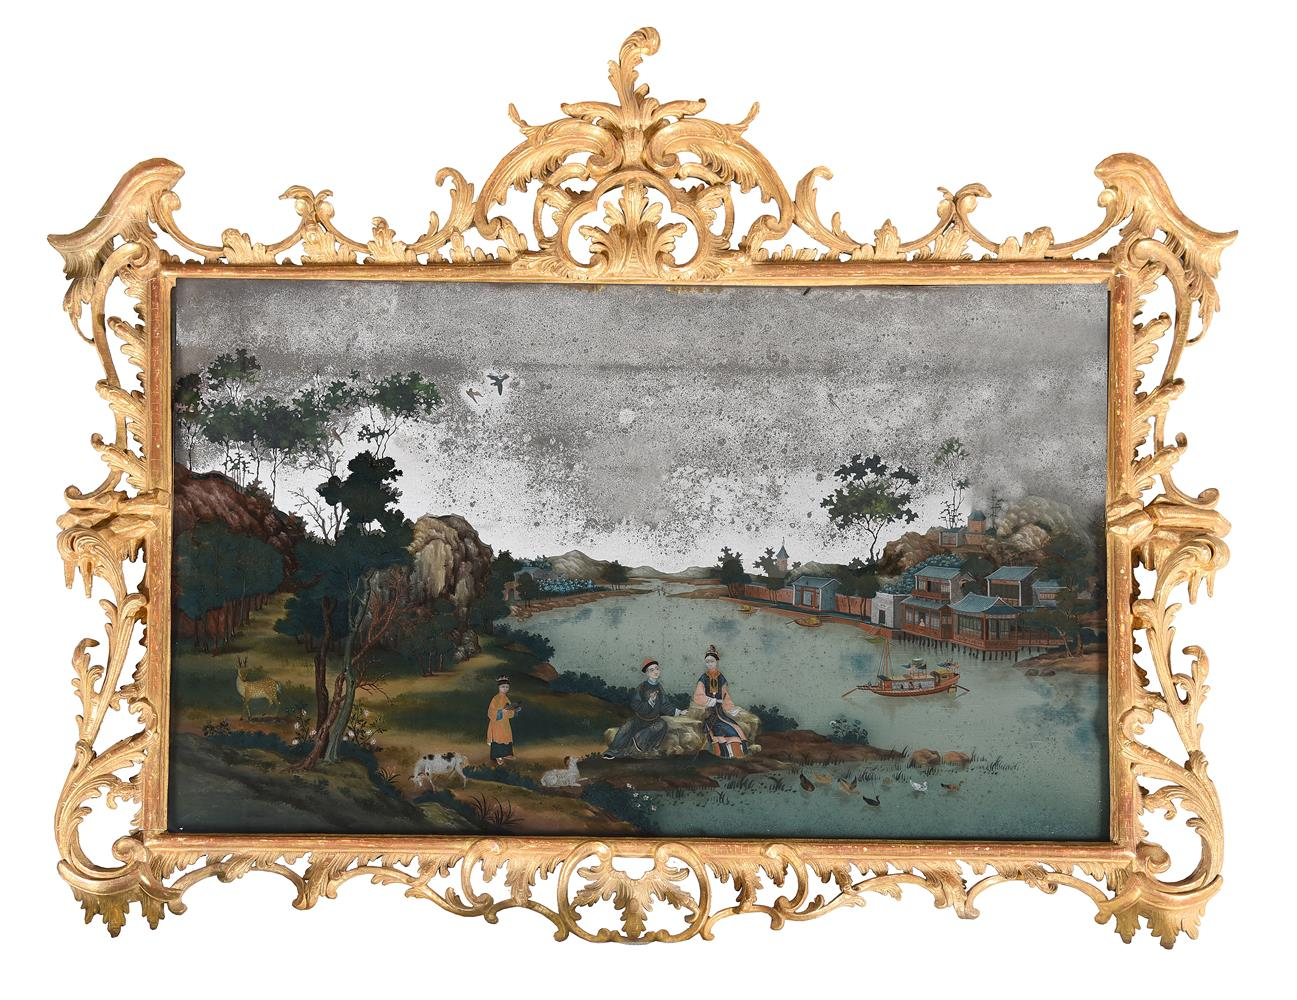 A CHINESE EXPORT REVERSE-PAINTED WALL MIRROR, THIRD QUARTER 18TH CENTURY